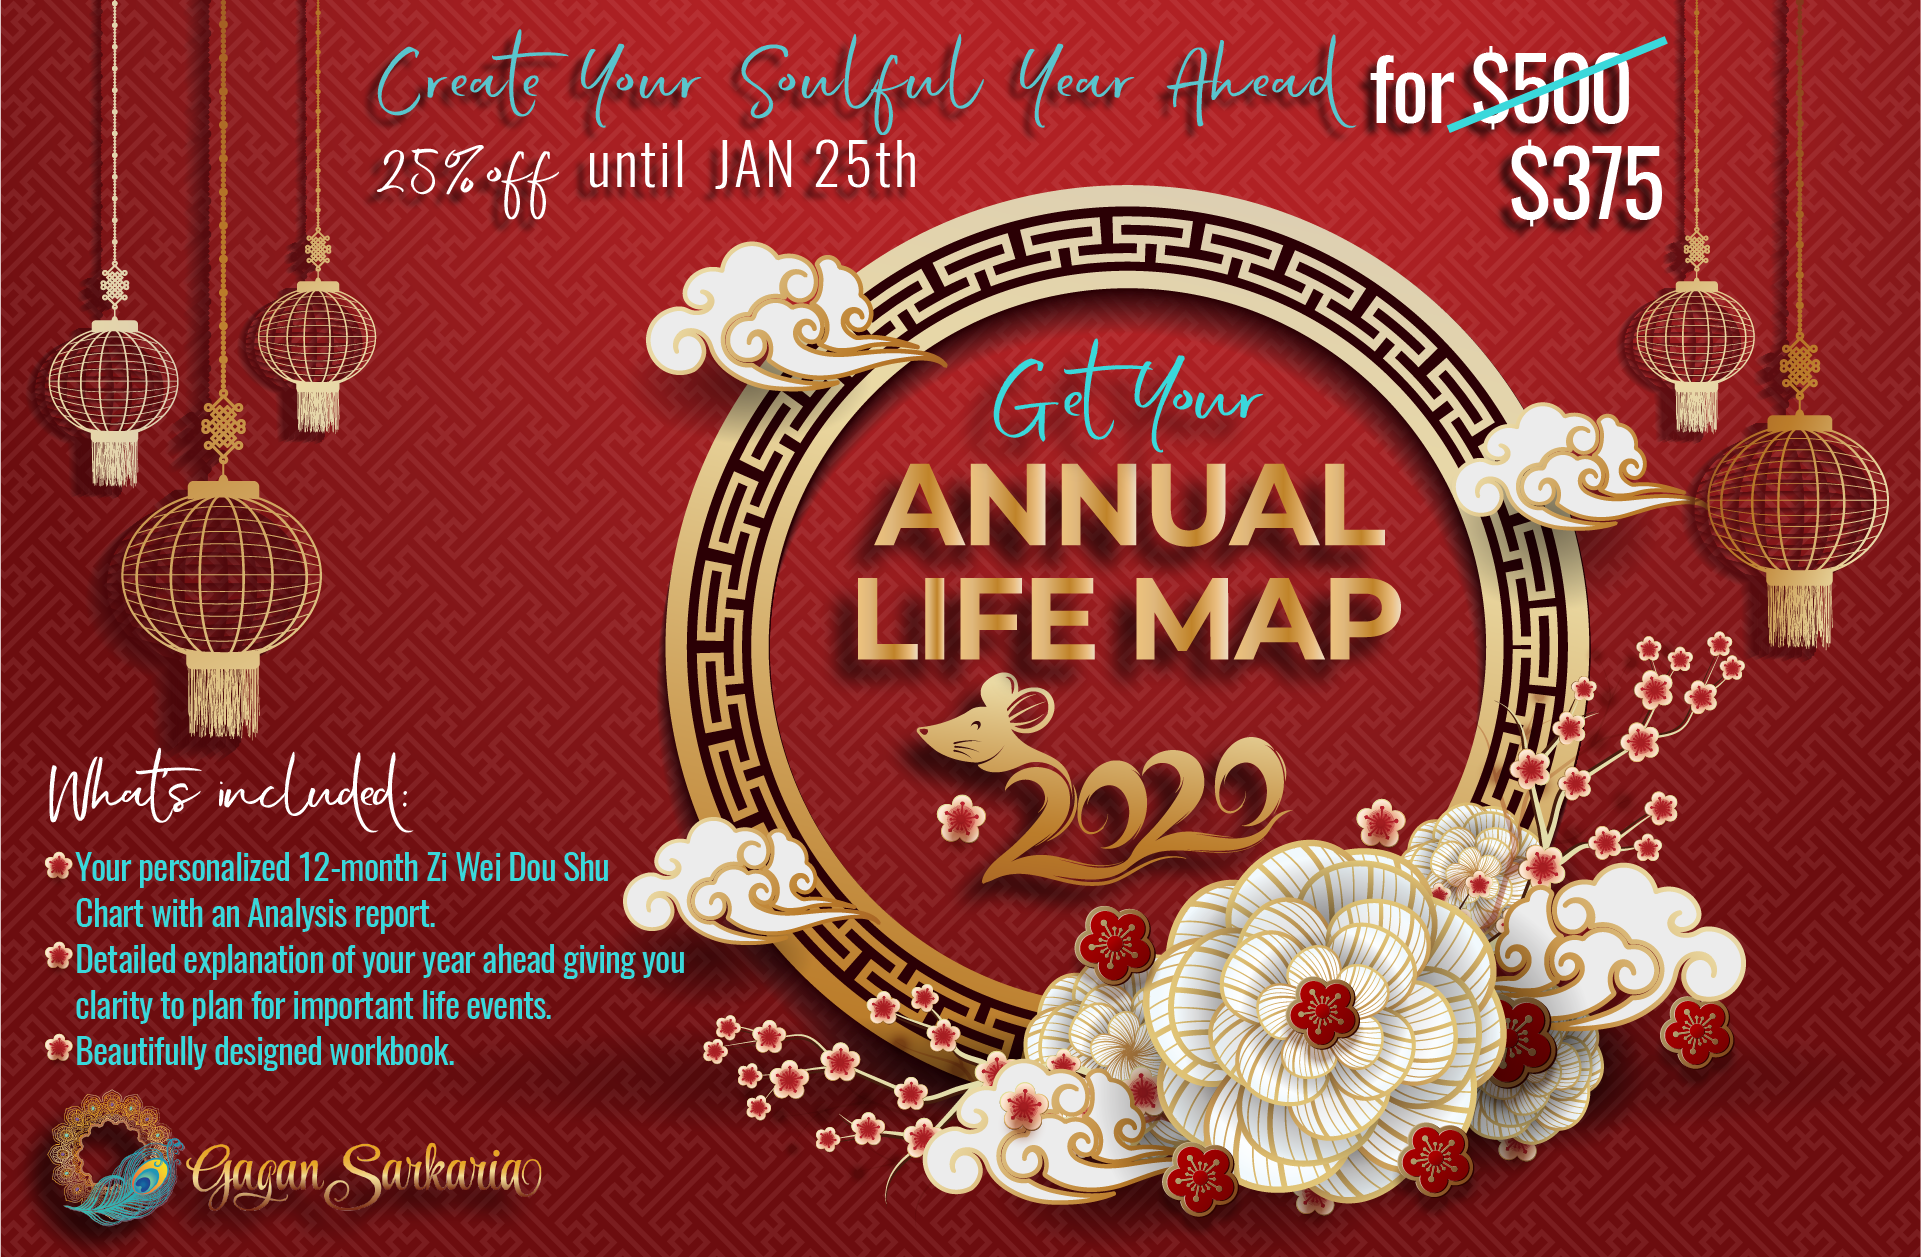 Gagan Sarkaria Annual Life Map Reading 2020 Sale 1